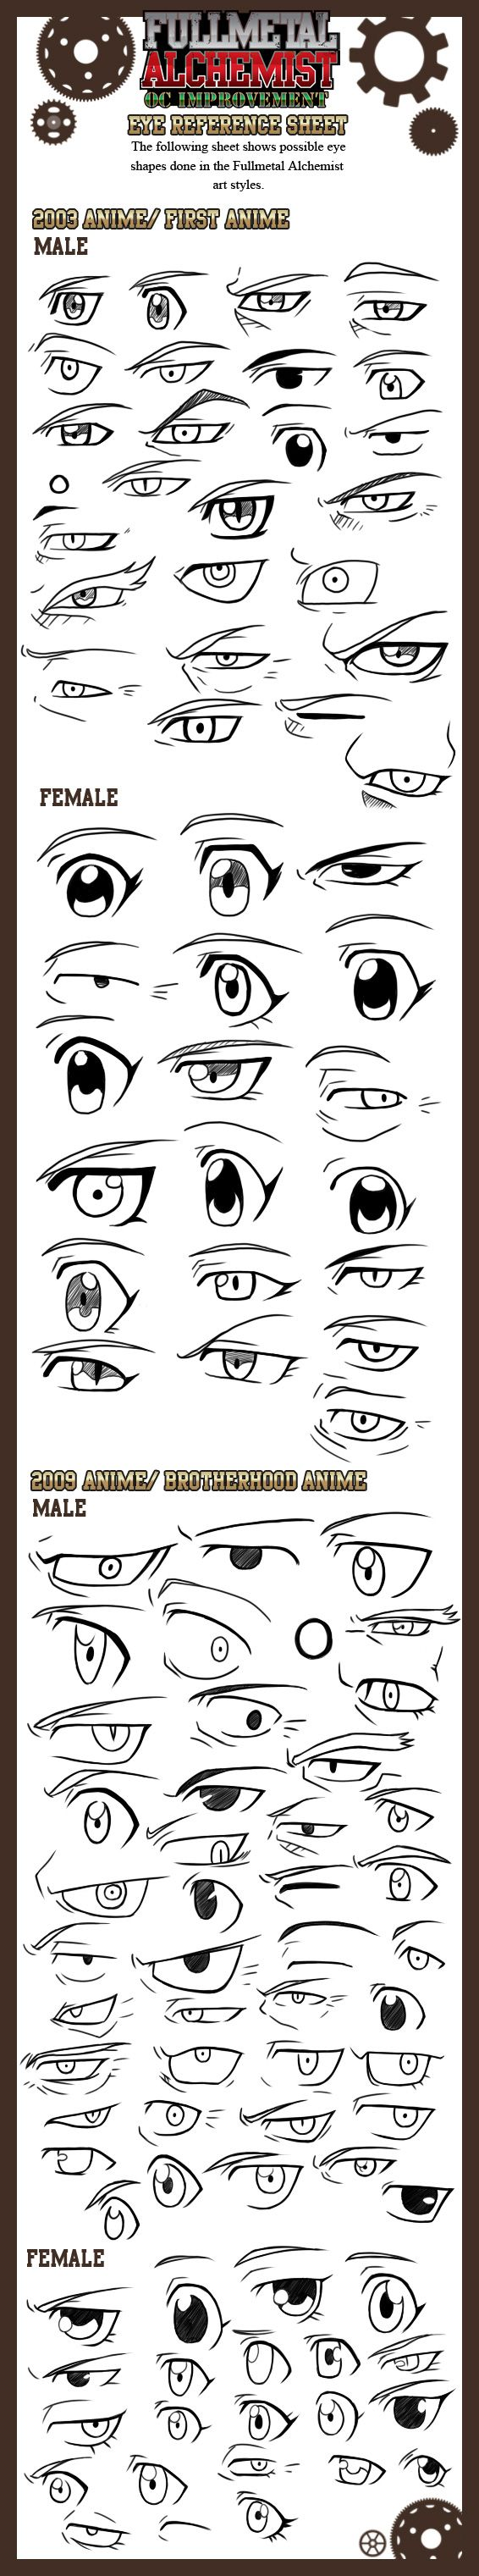 FMA Eye Reference Sheet   Woah 0-0 So many eyes